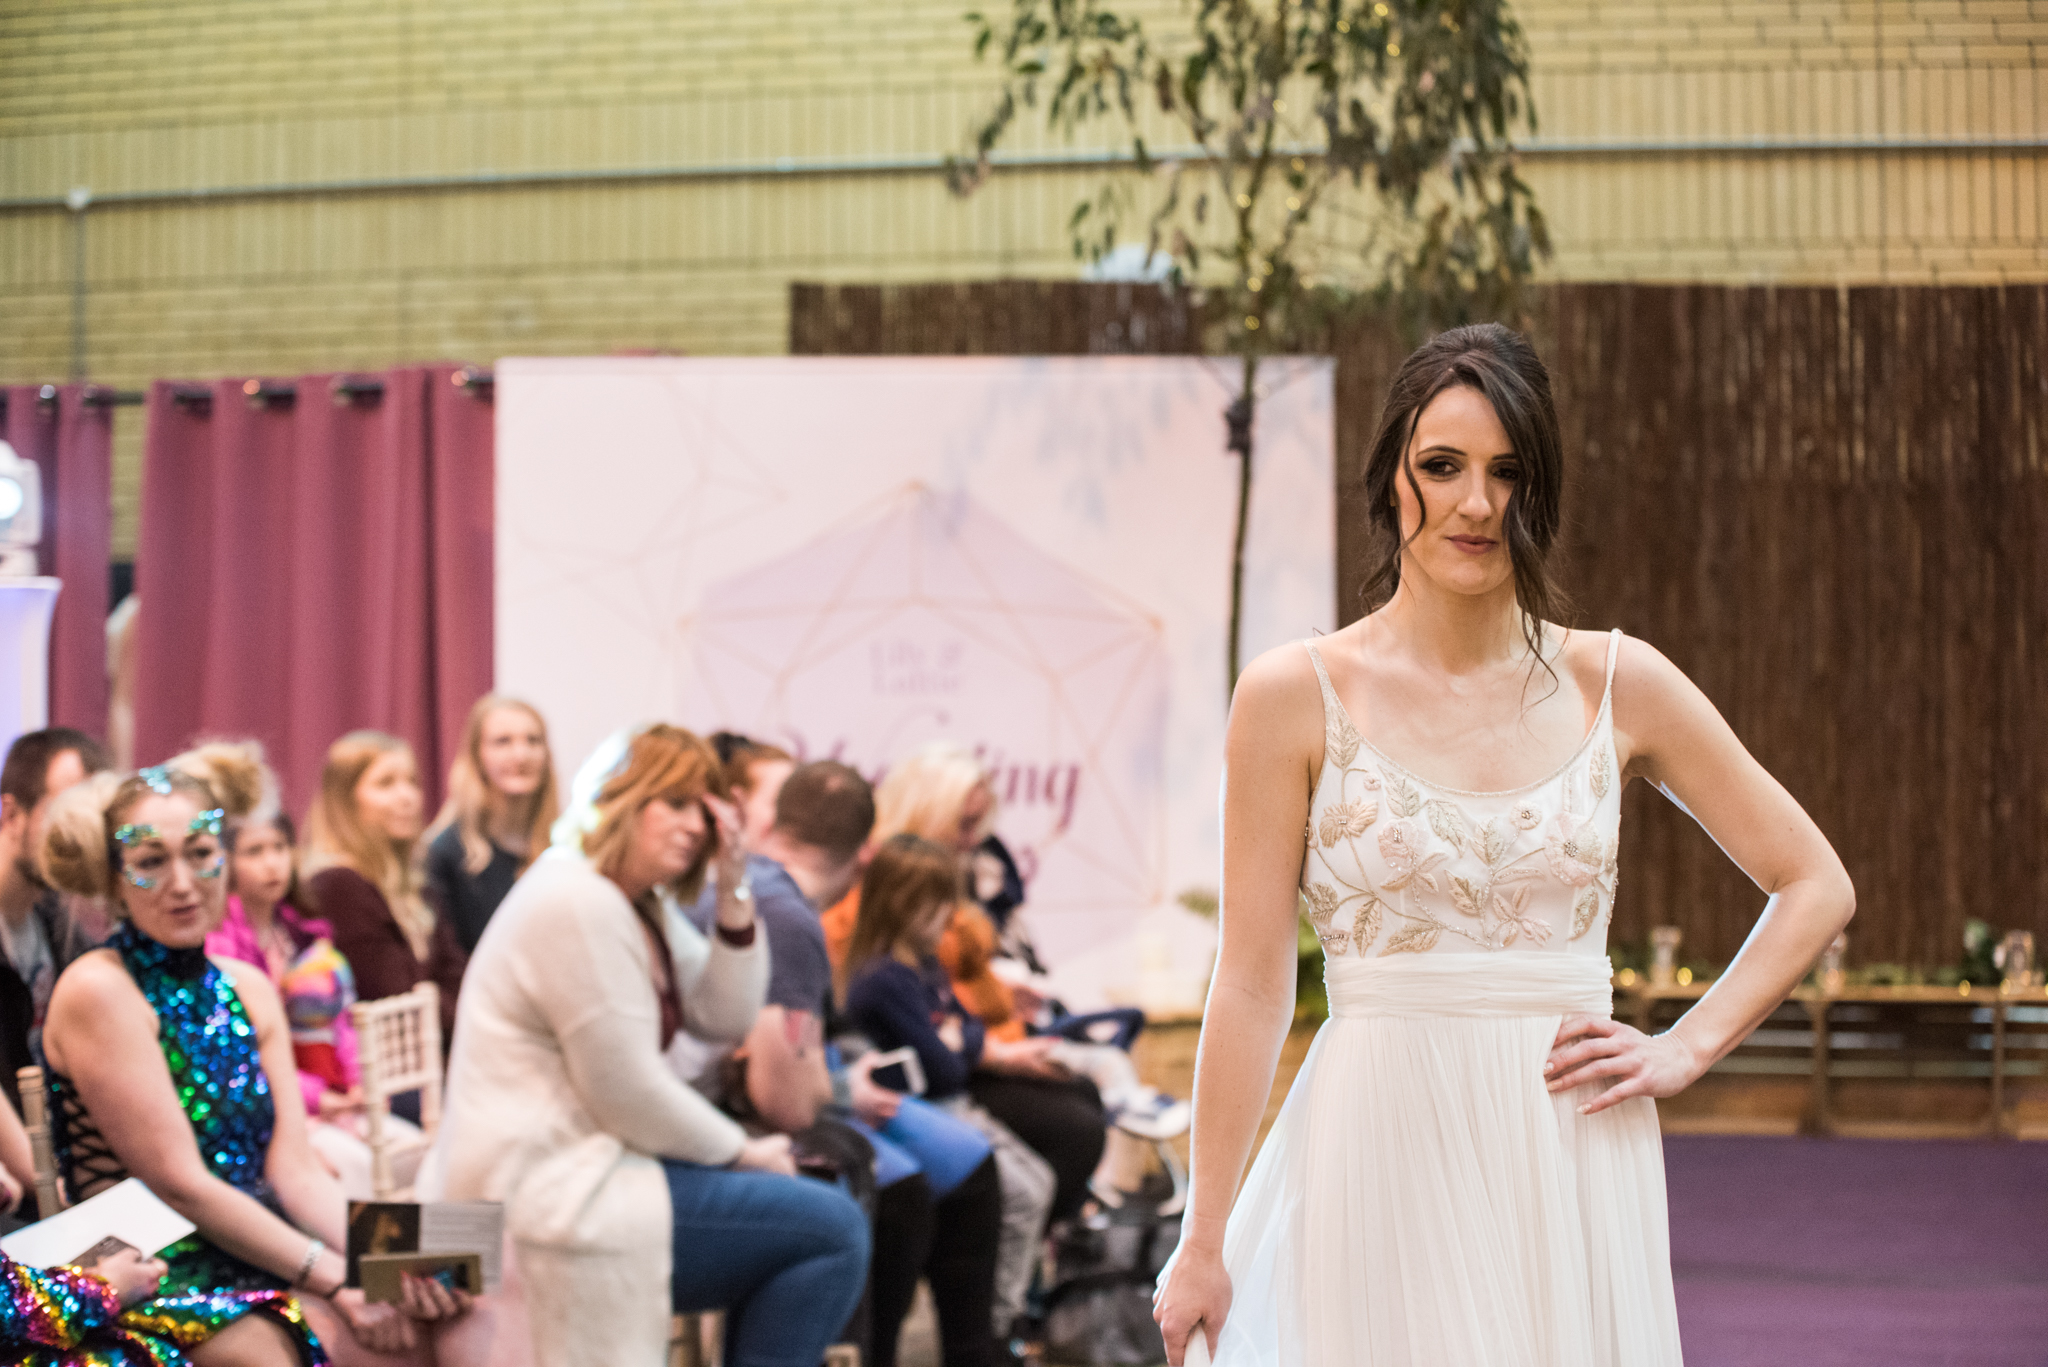 Lily & Lottie Wedding Show Fashion Catwalk